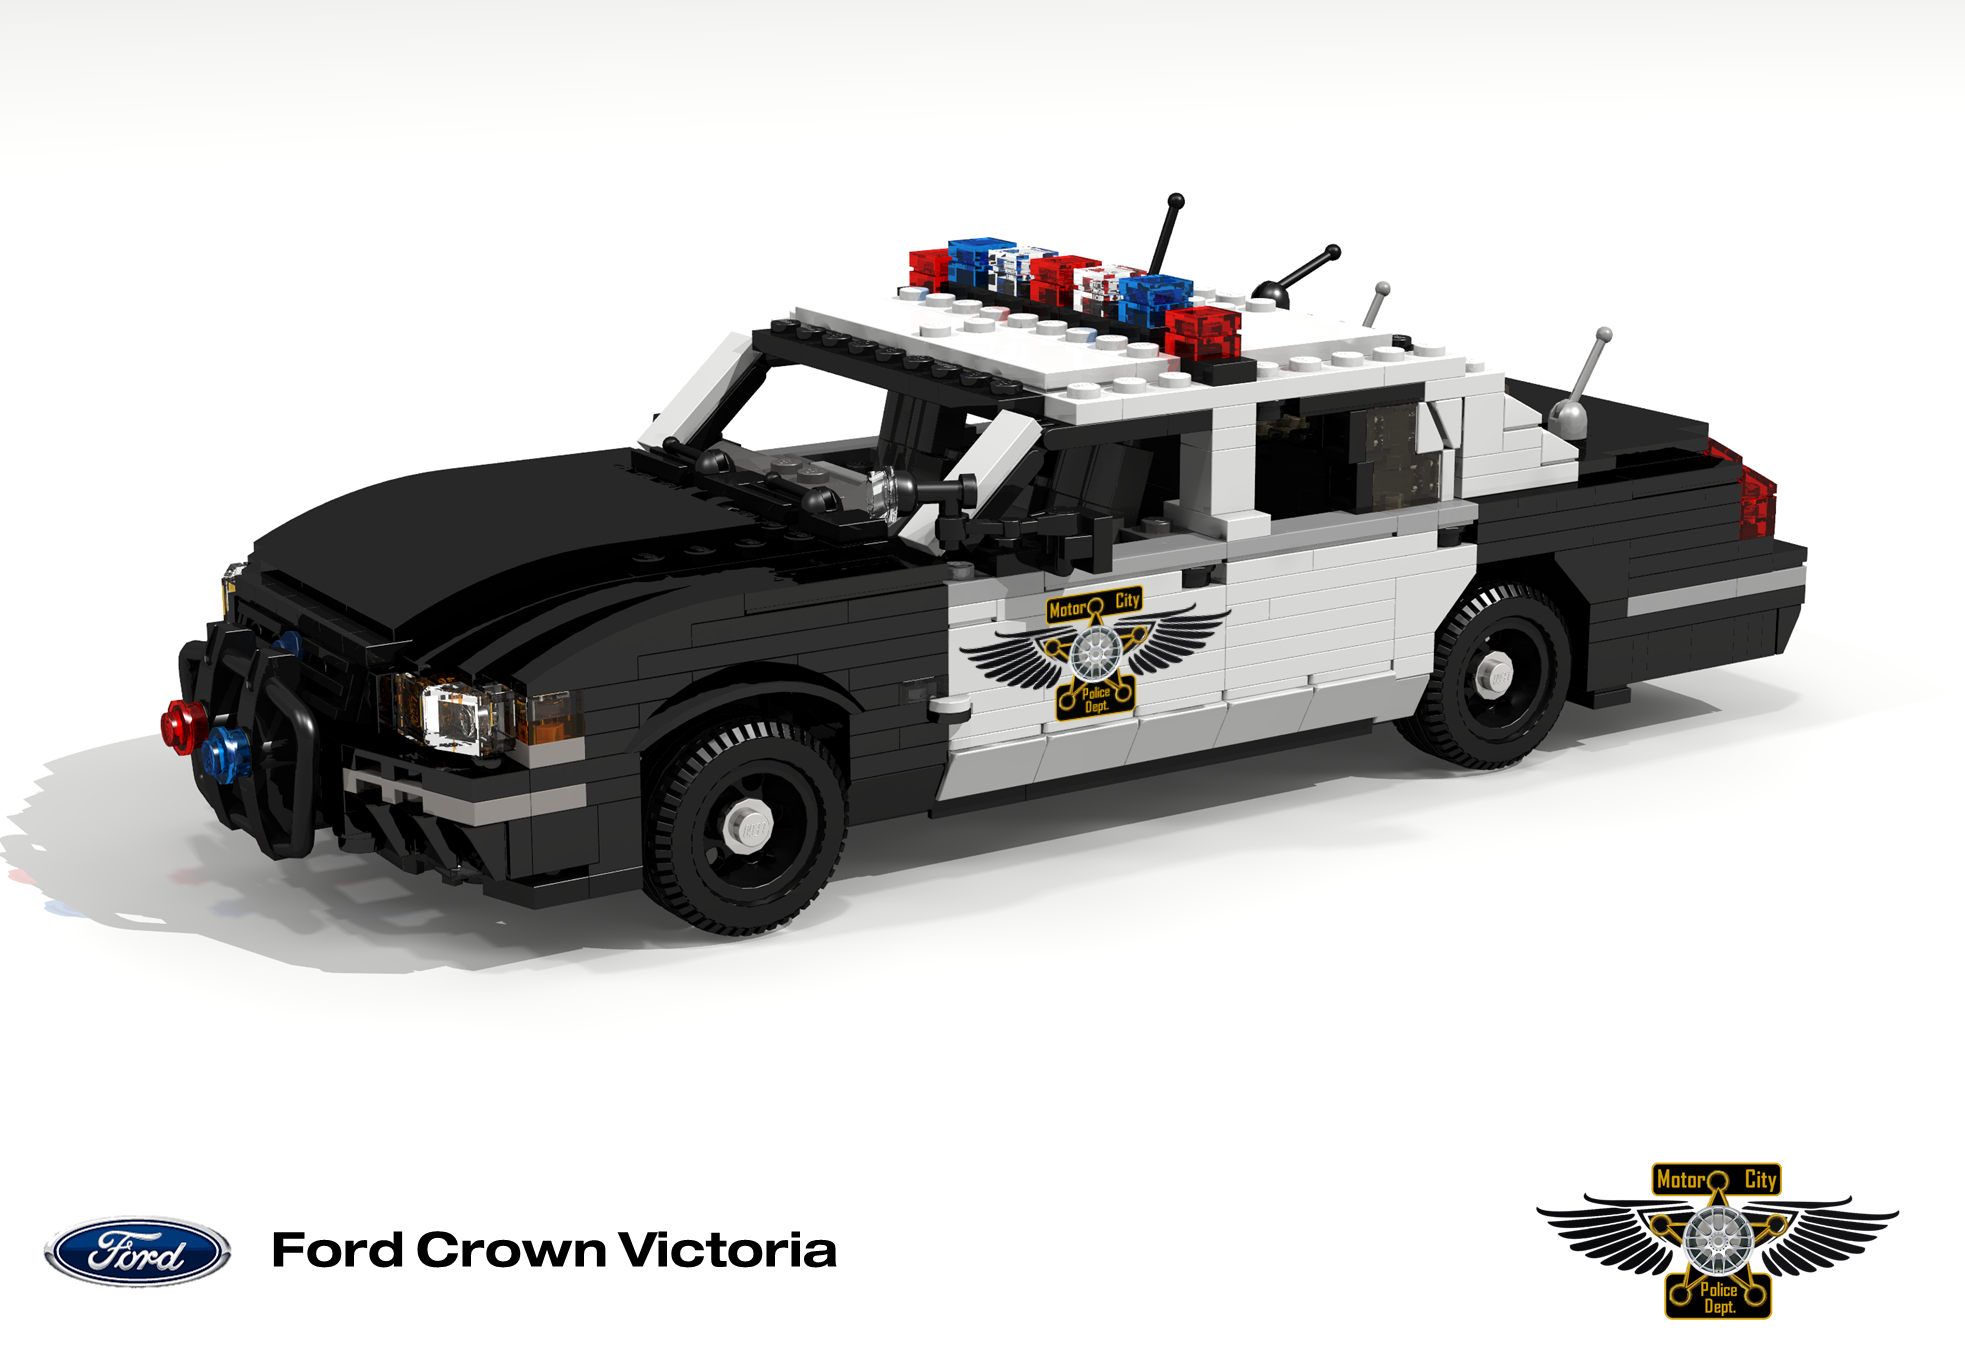 2003_ford_crown_victoria_police_cruiser.png